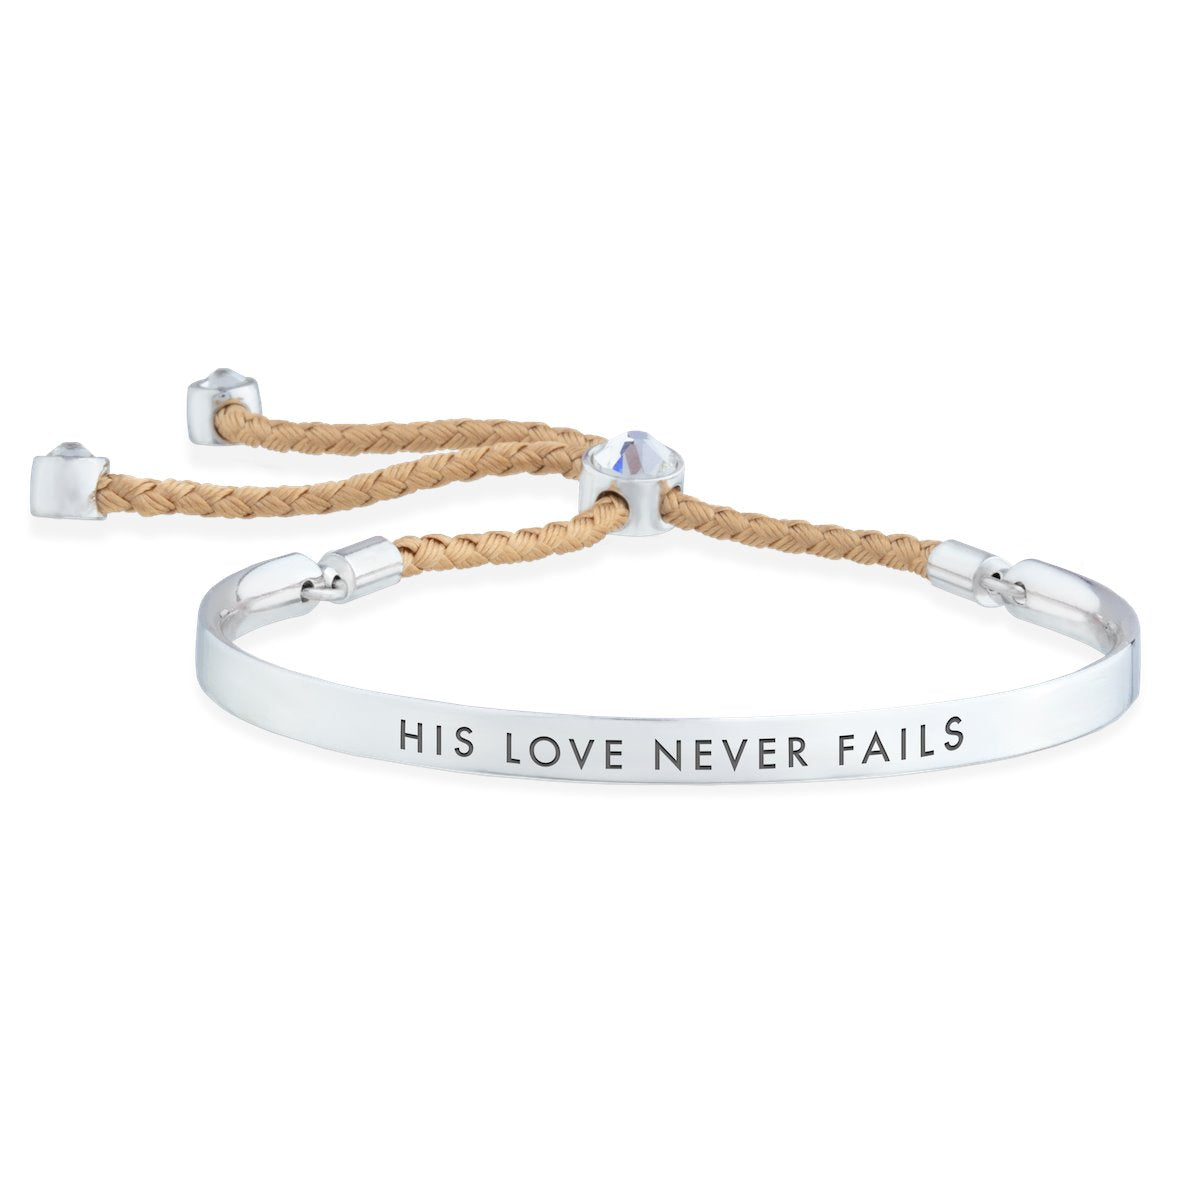 His Love Never Fails – Words of Empowerment Bracelet